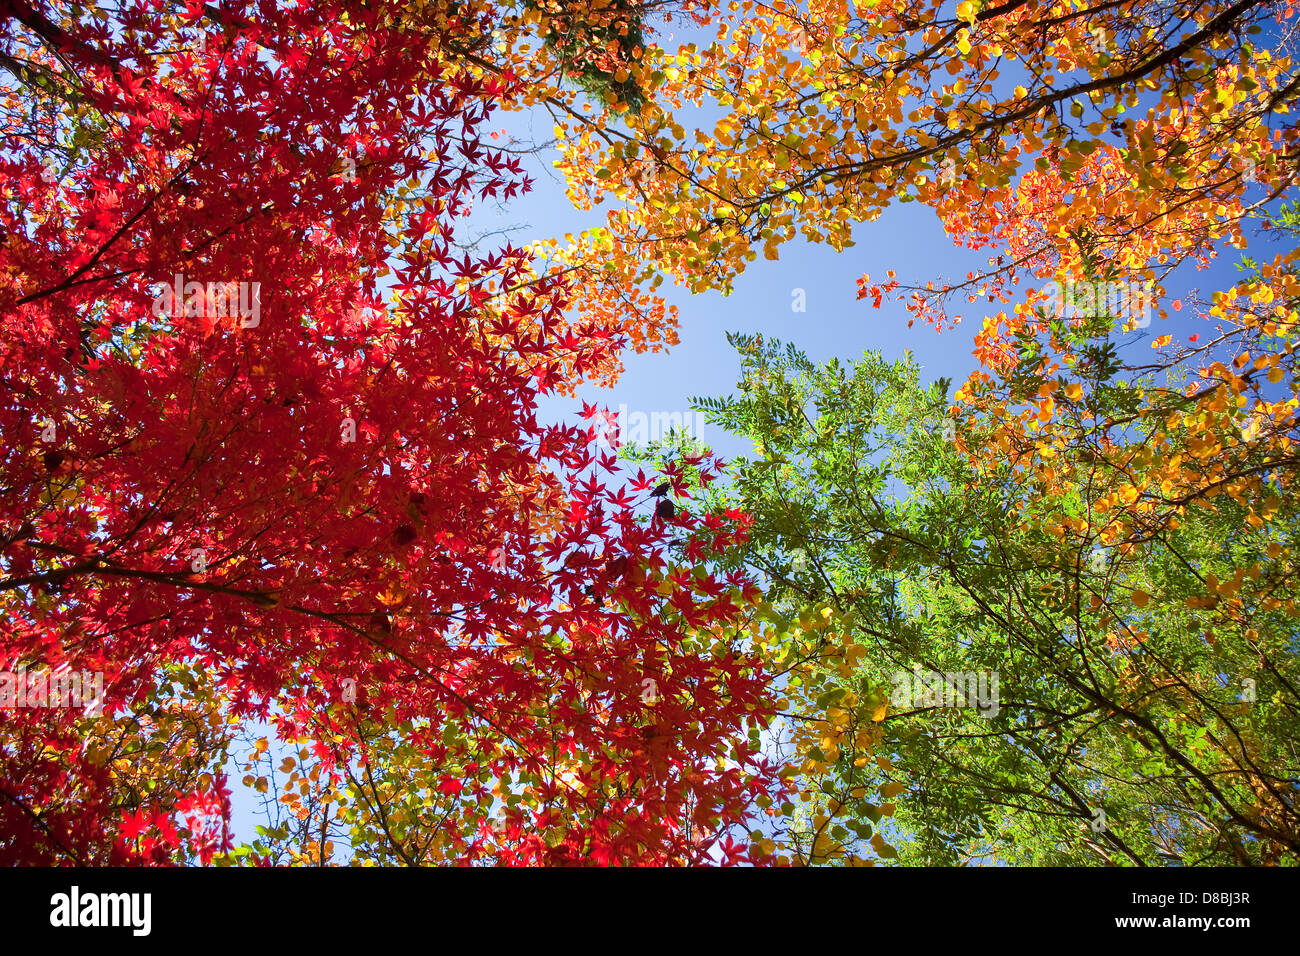 Brightly coloured Autumn leaves against a blue sky. Stock Photo